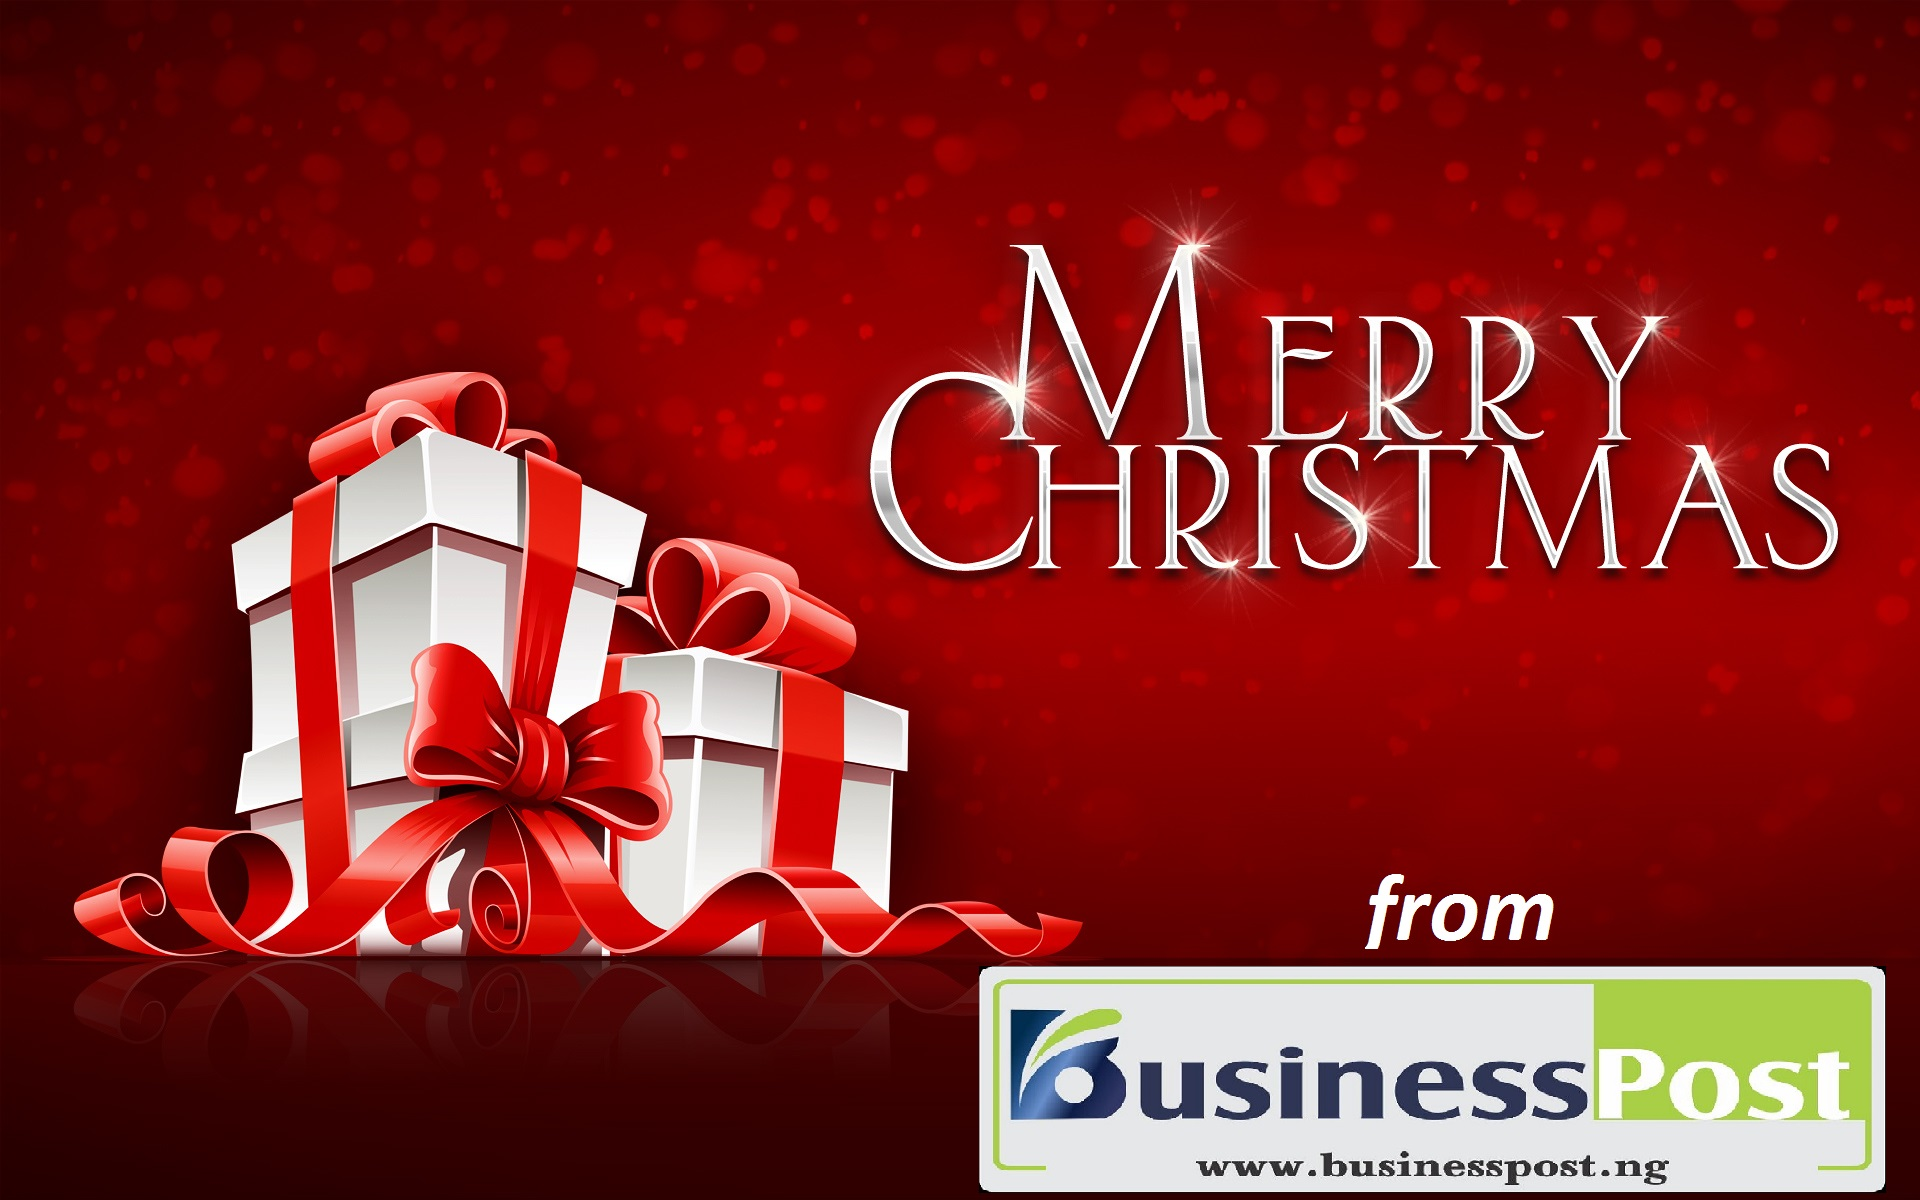 the management and staff of business post nigeria bpn would like to wish our numerous readers and esteemed advertisers and partners a merry christmas